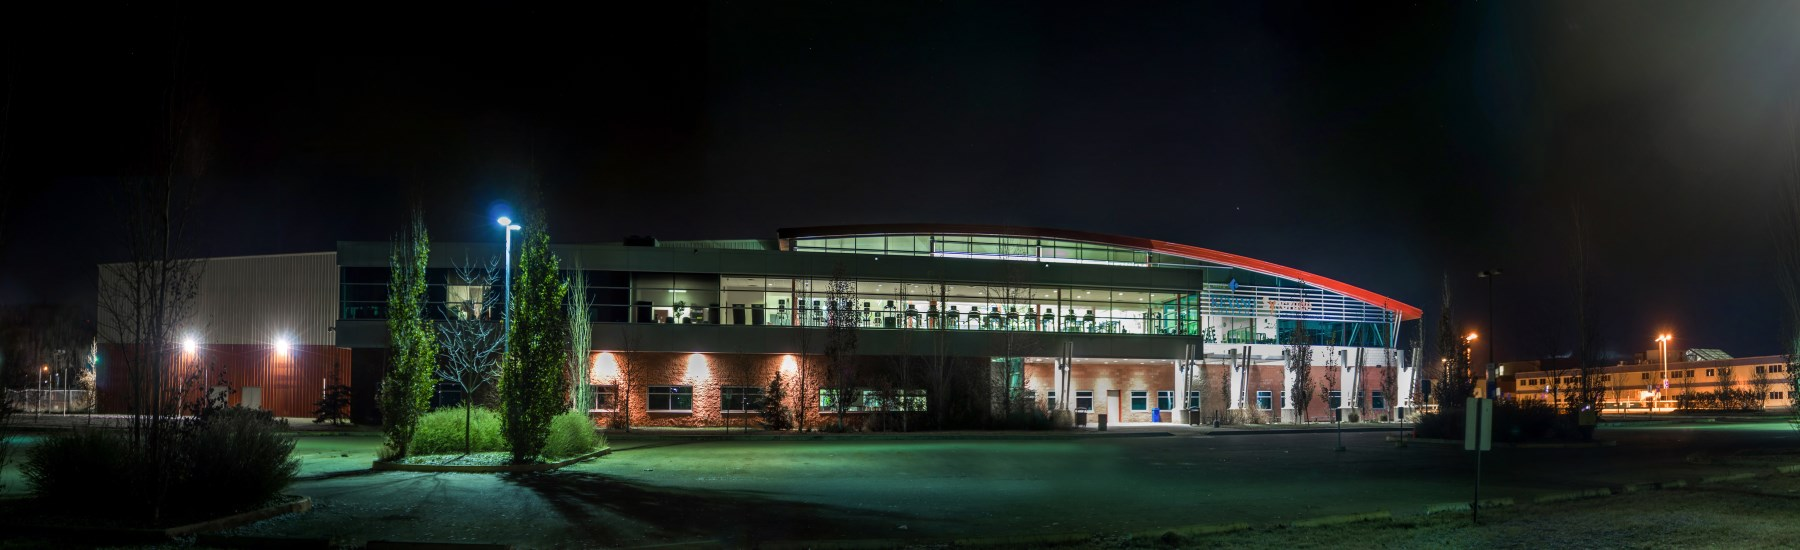 sport and wellness centre at night